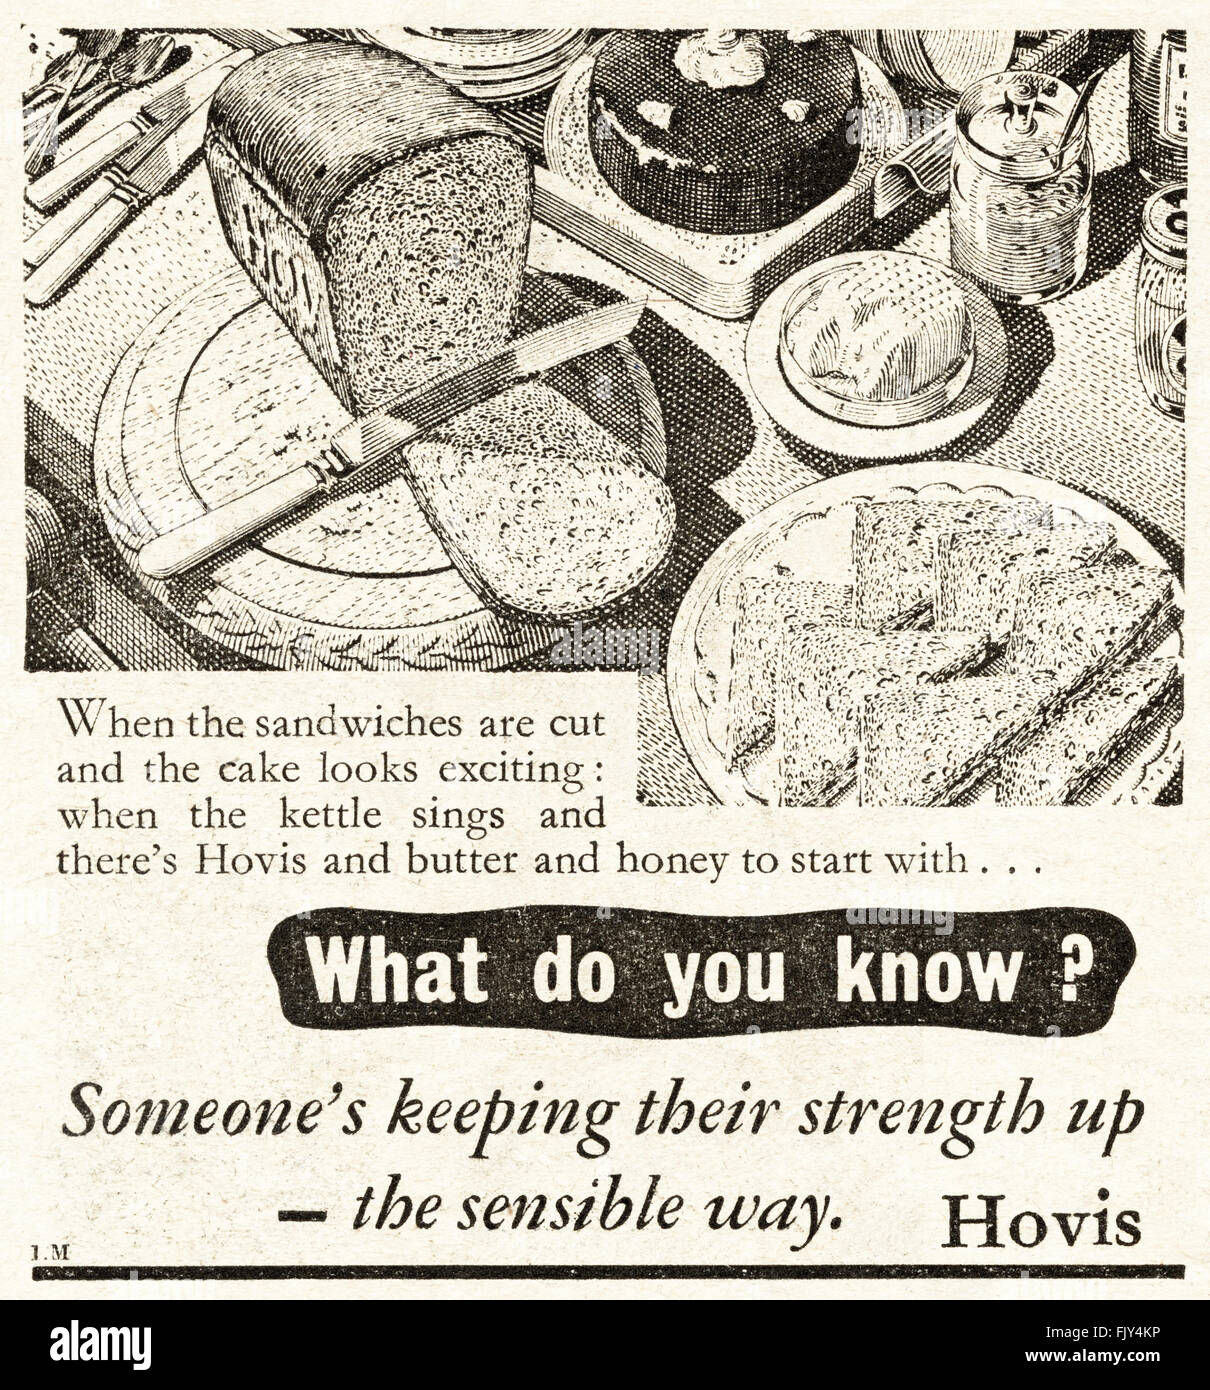 Original vintage advert from 1940s. Advertisement dated 1947 advertising HOVIS BREAD. - Stock Image